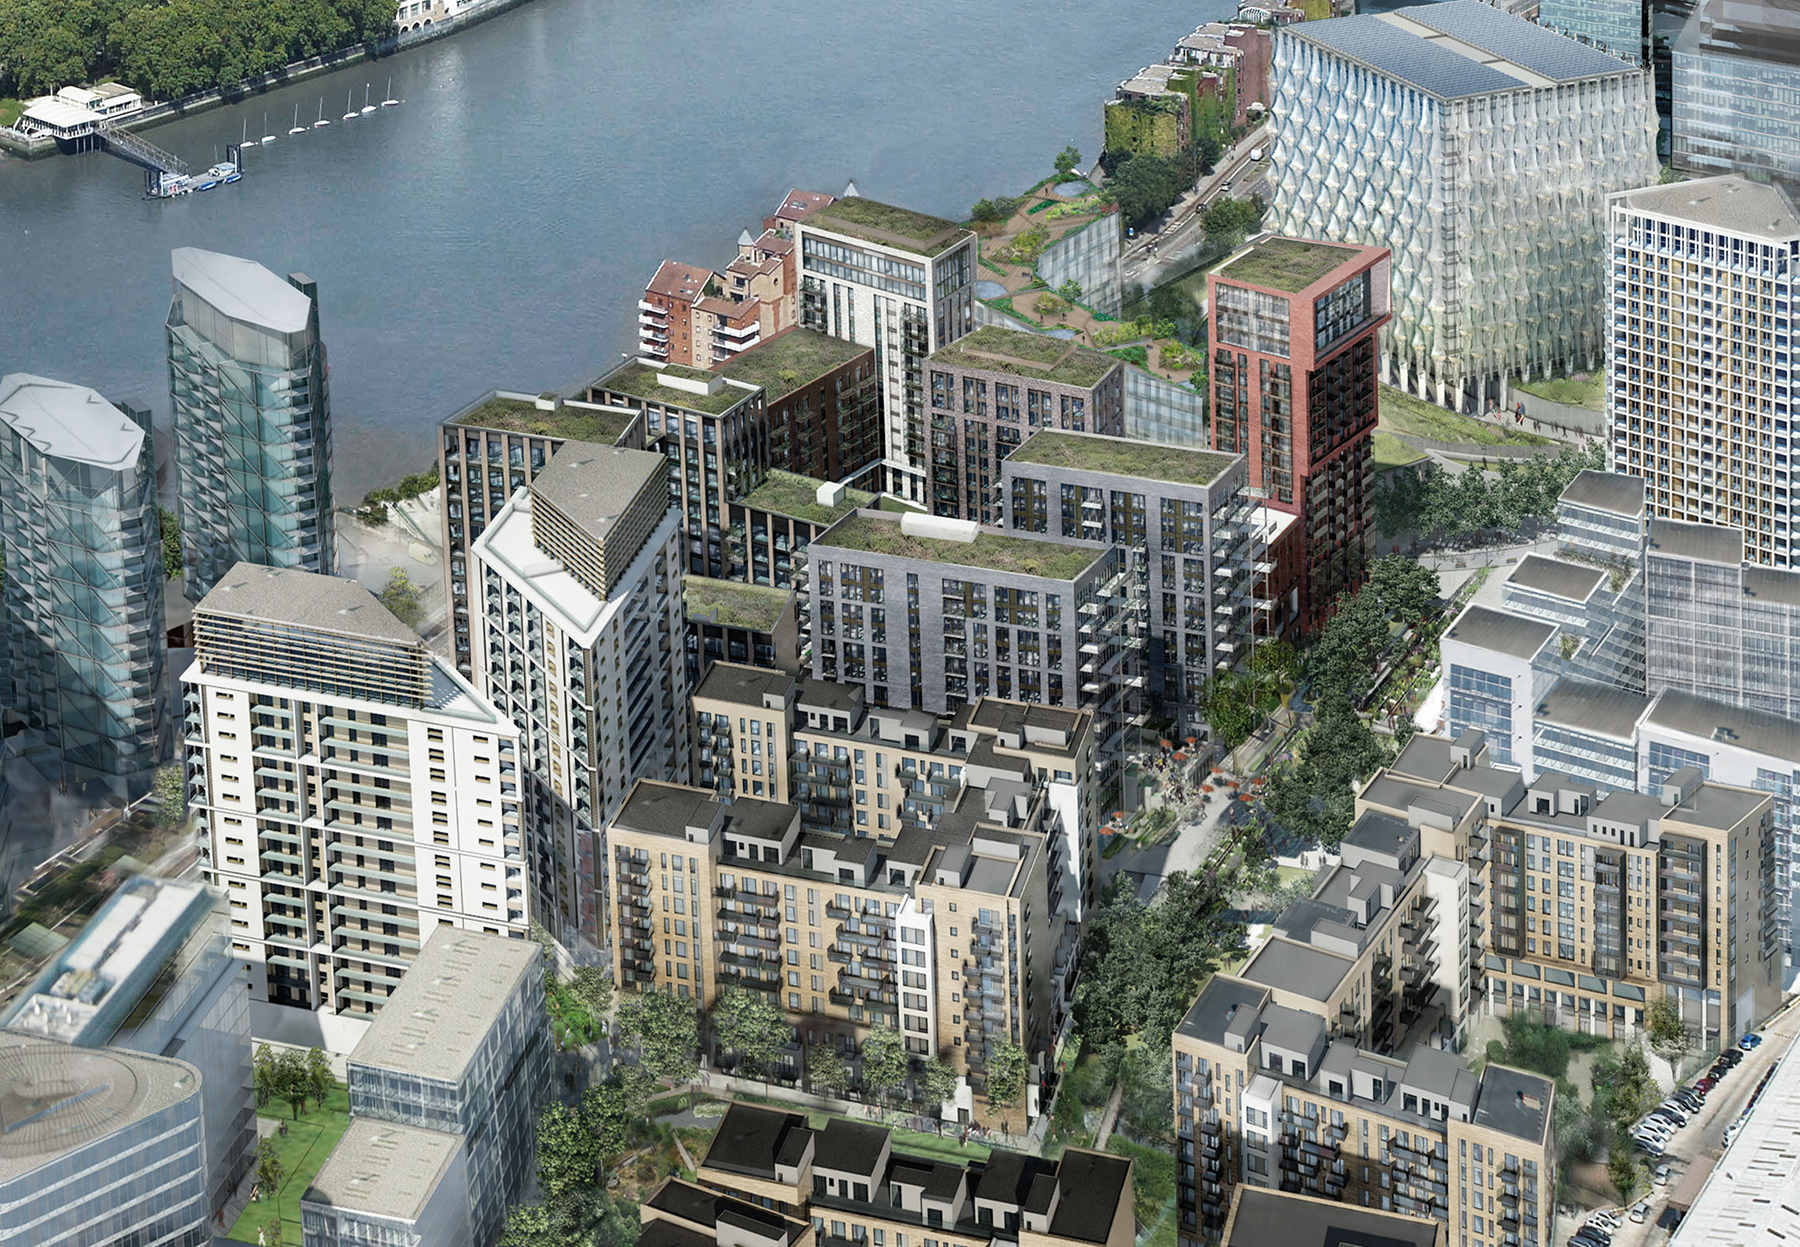 Embassy gardens development nine elms london sw8 for Consul high availability